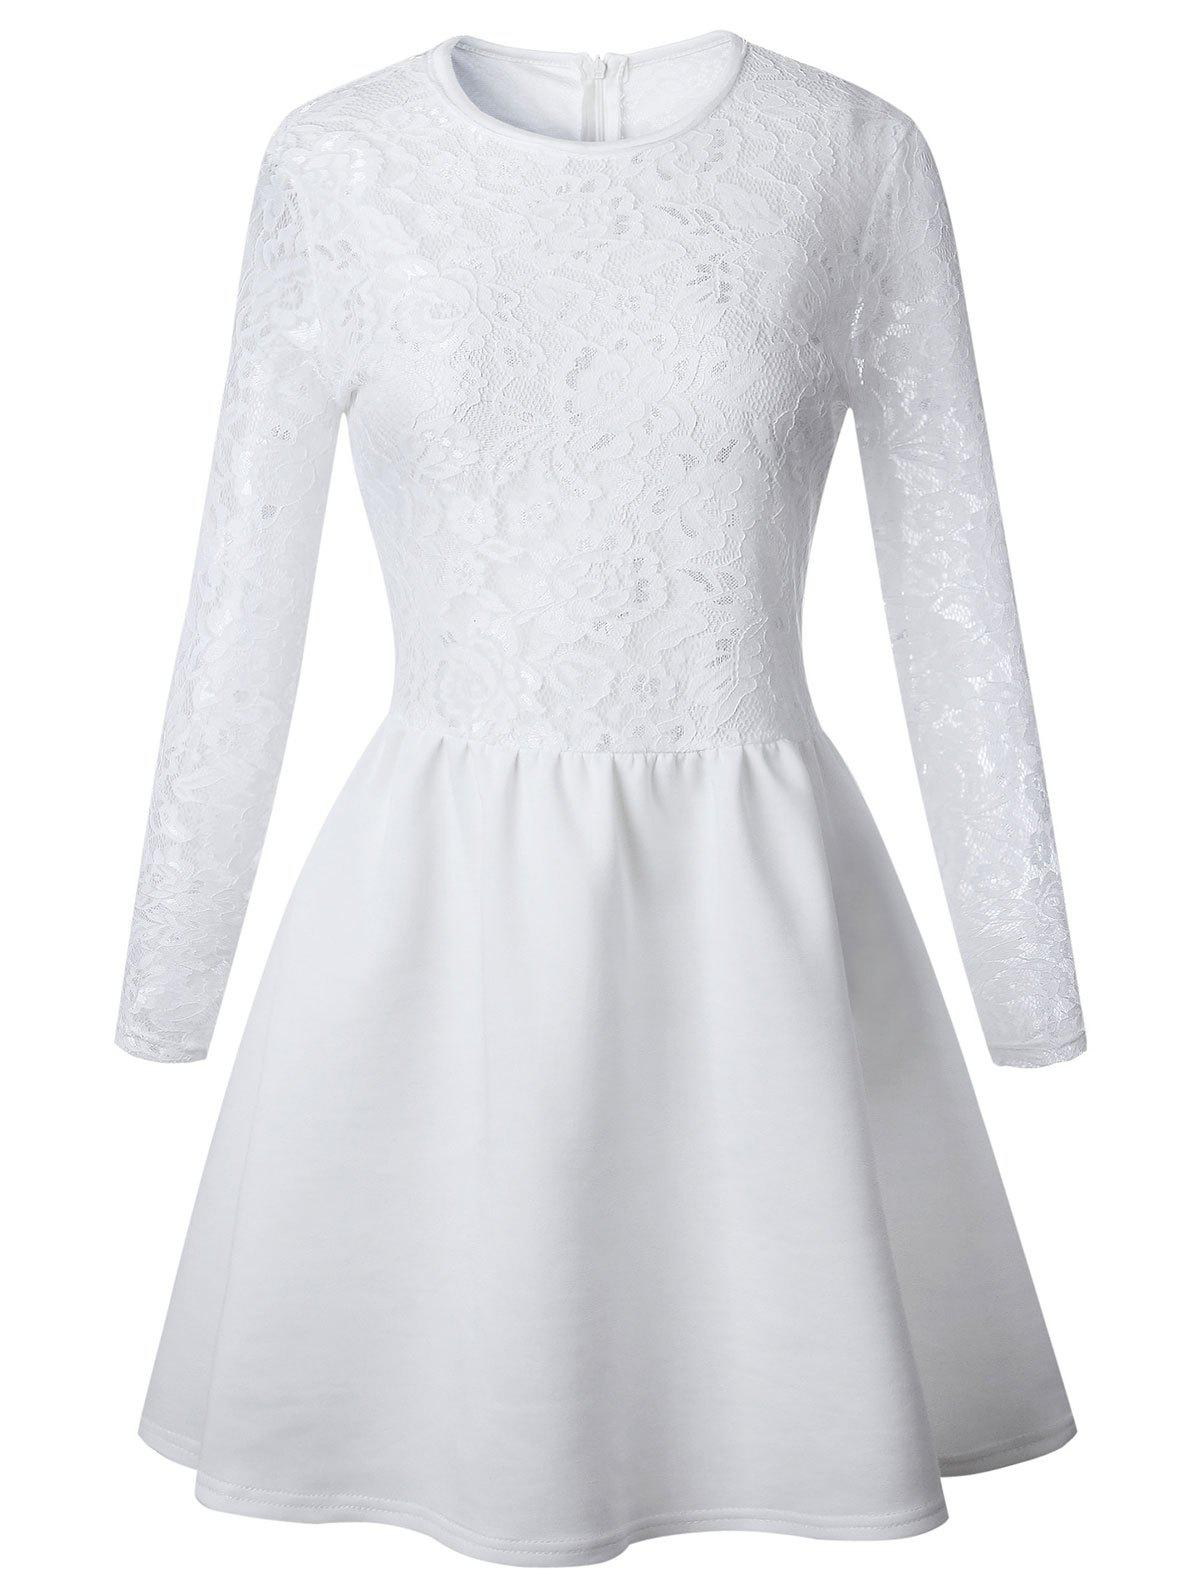 Long Sleeve Lace Flare Skater Dress - WHITE M